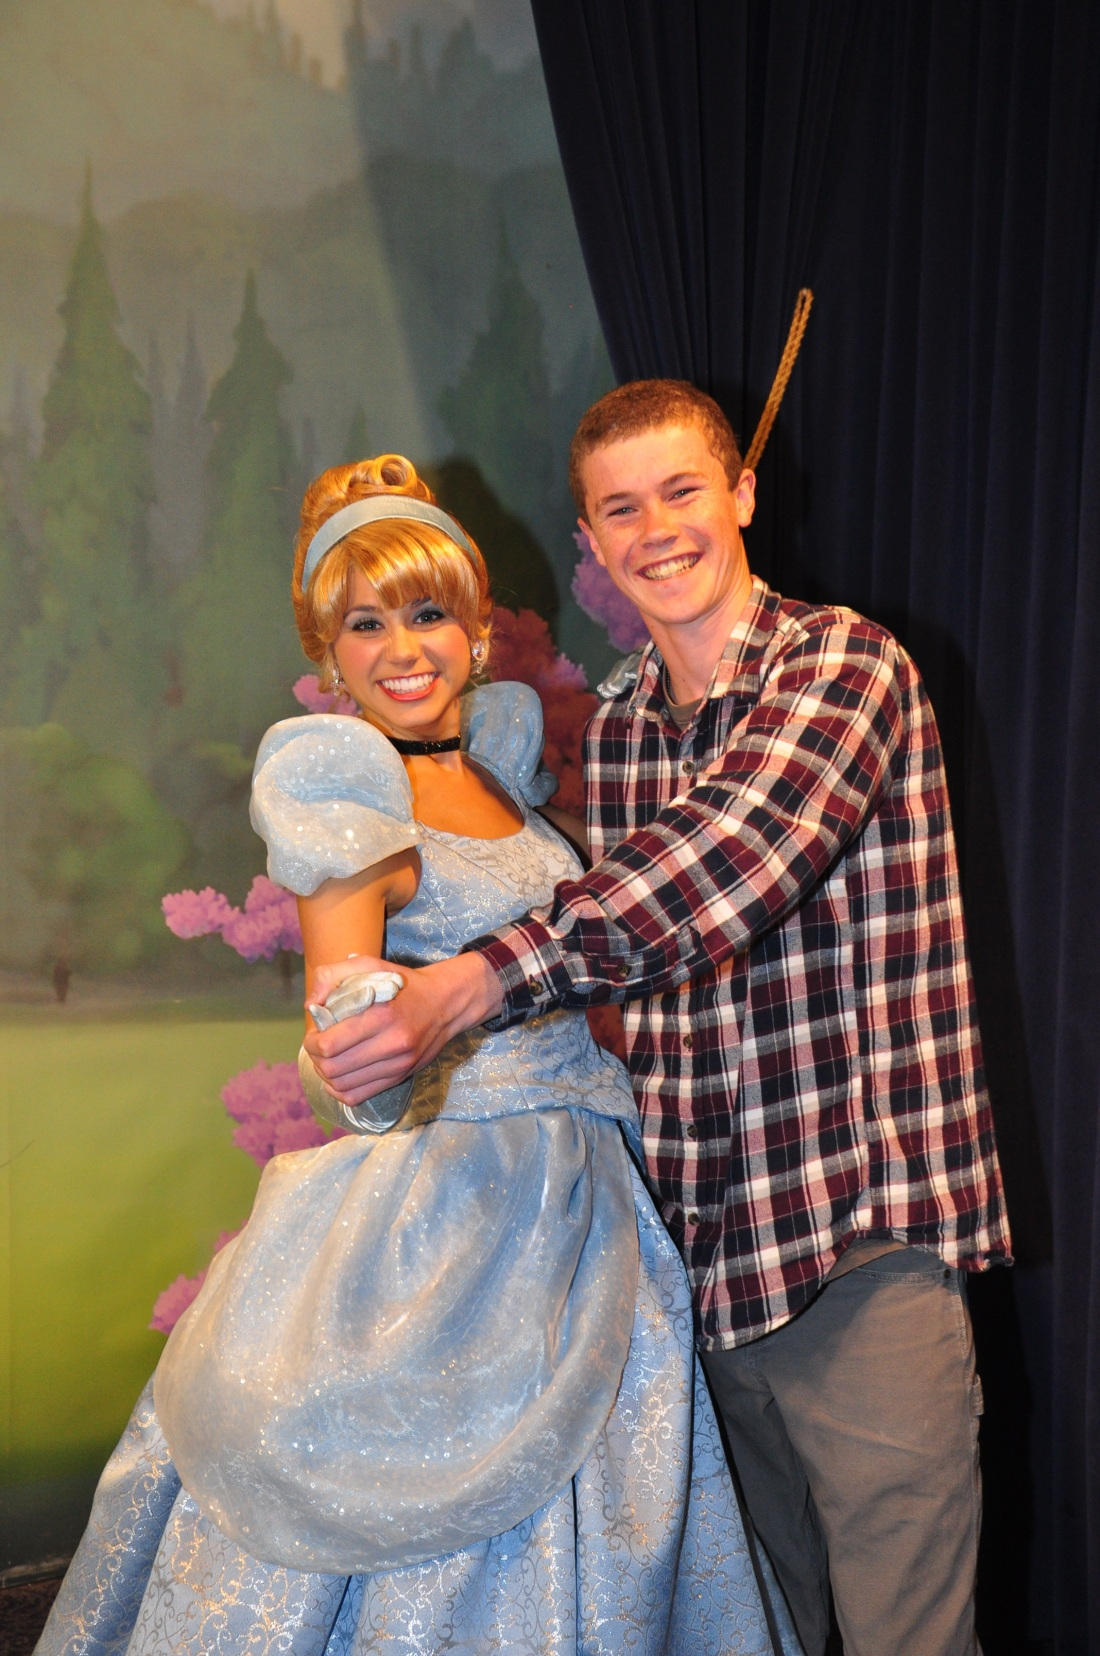 A dance with Cinderella!